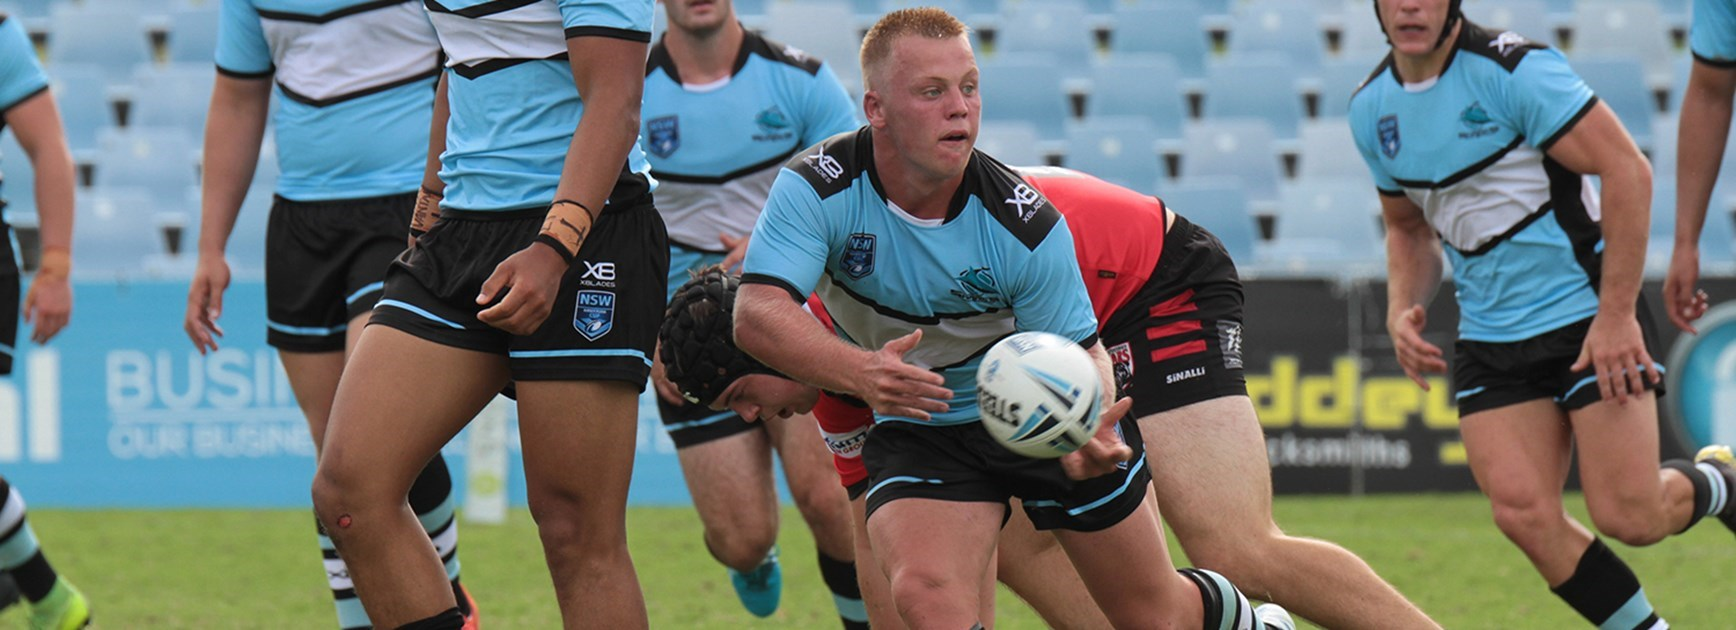 Team in Focus | Cronulla-Sutherland Sharks